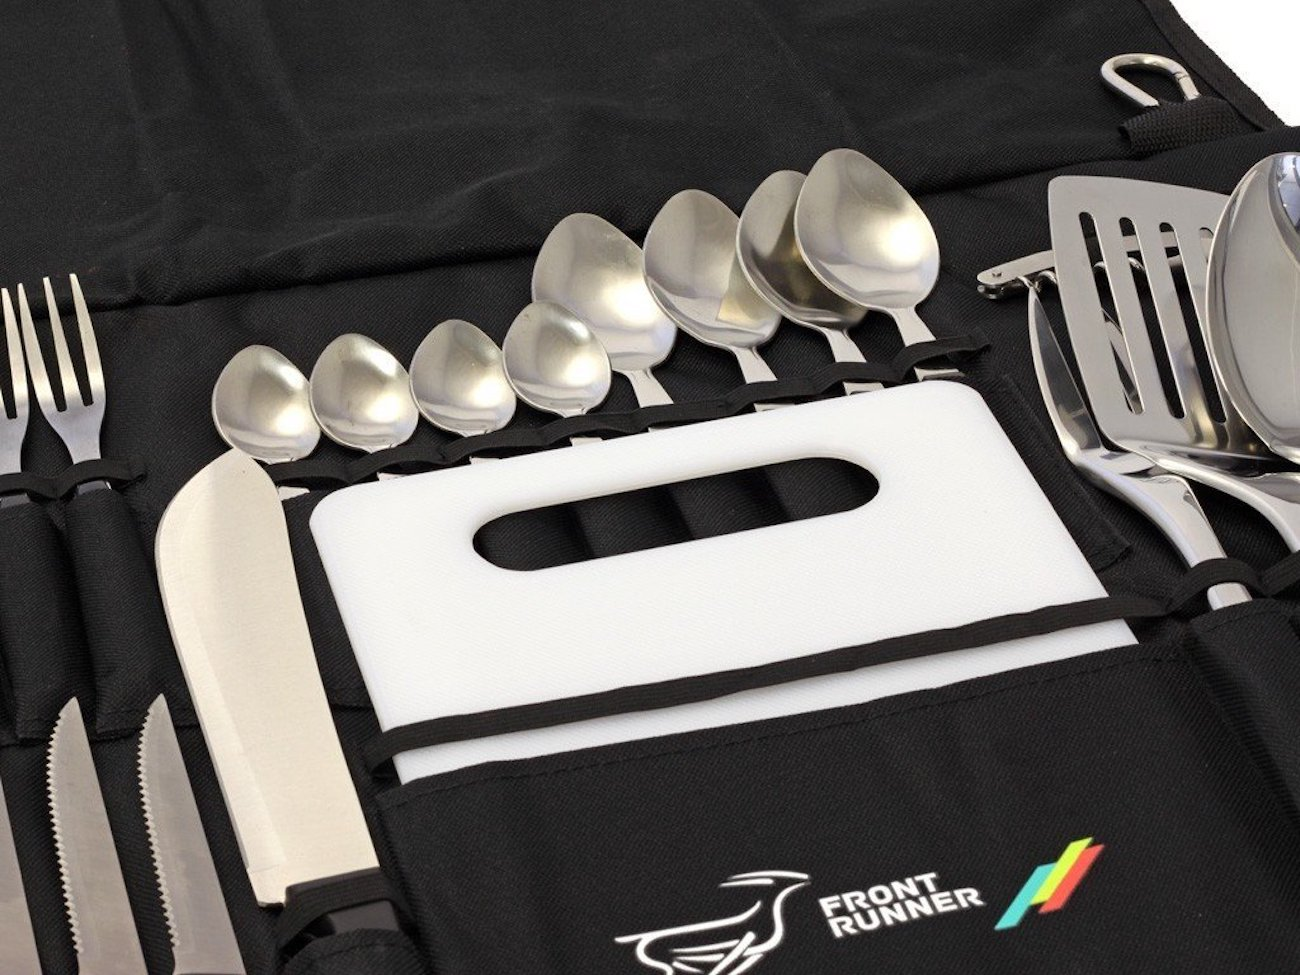 Front Runner Outfitters Camp Kitchen Utensil Set